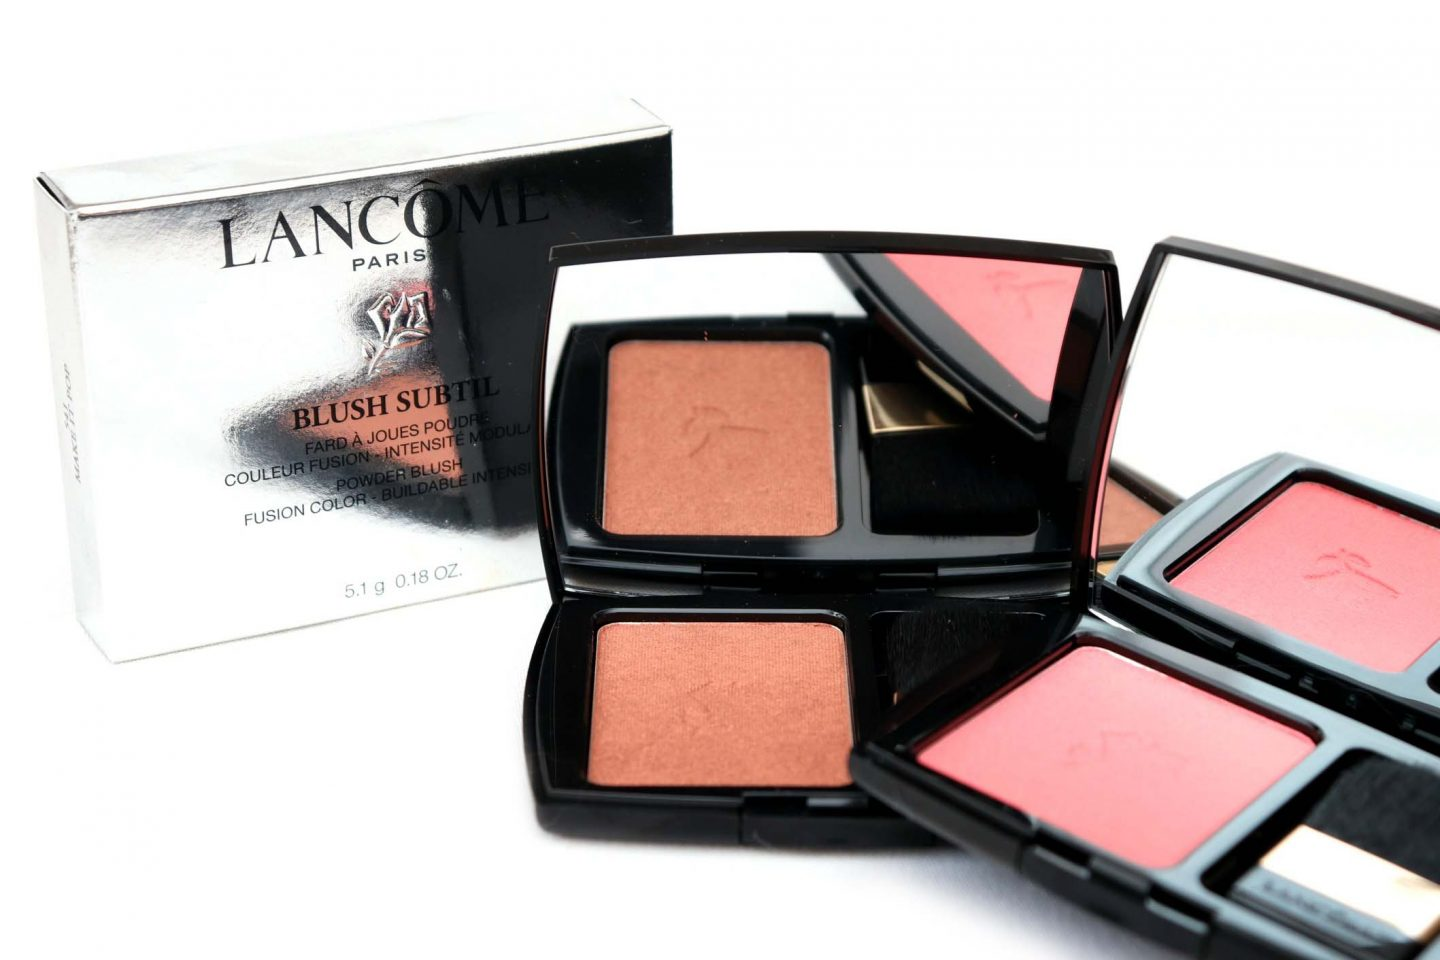 Lancôme Blush Subtil Review